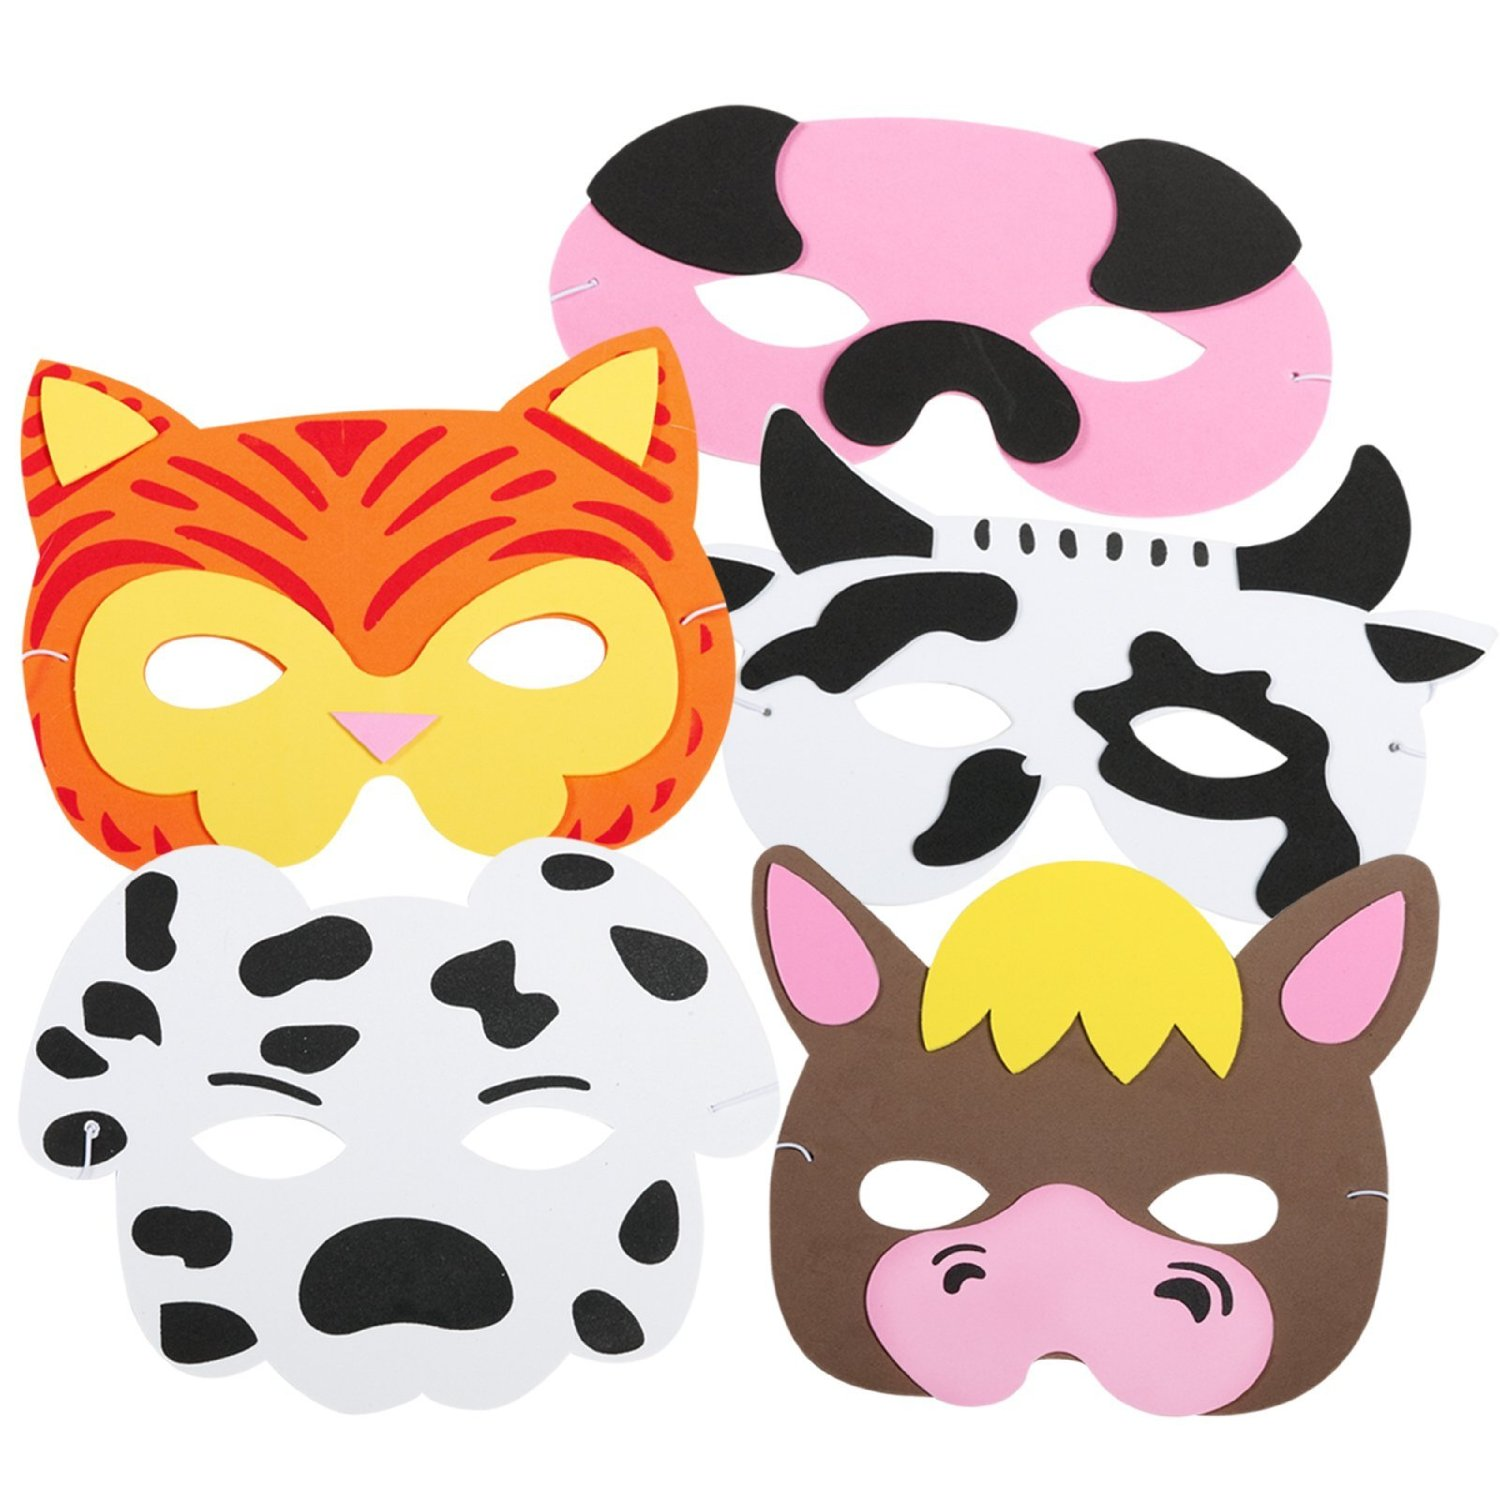 Cheap Farm Animal Masks Find Farm Animal Masks Deals On Line At